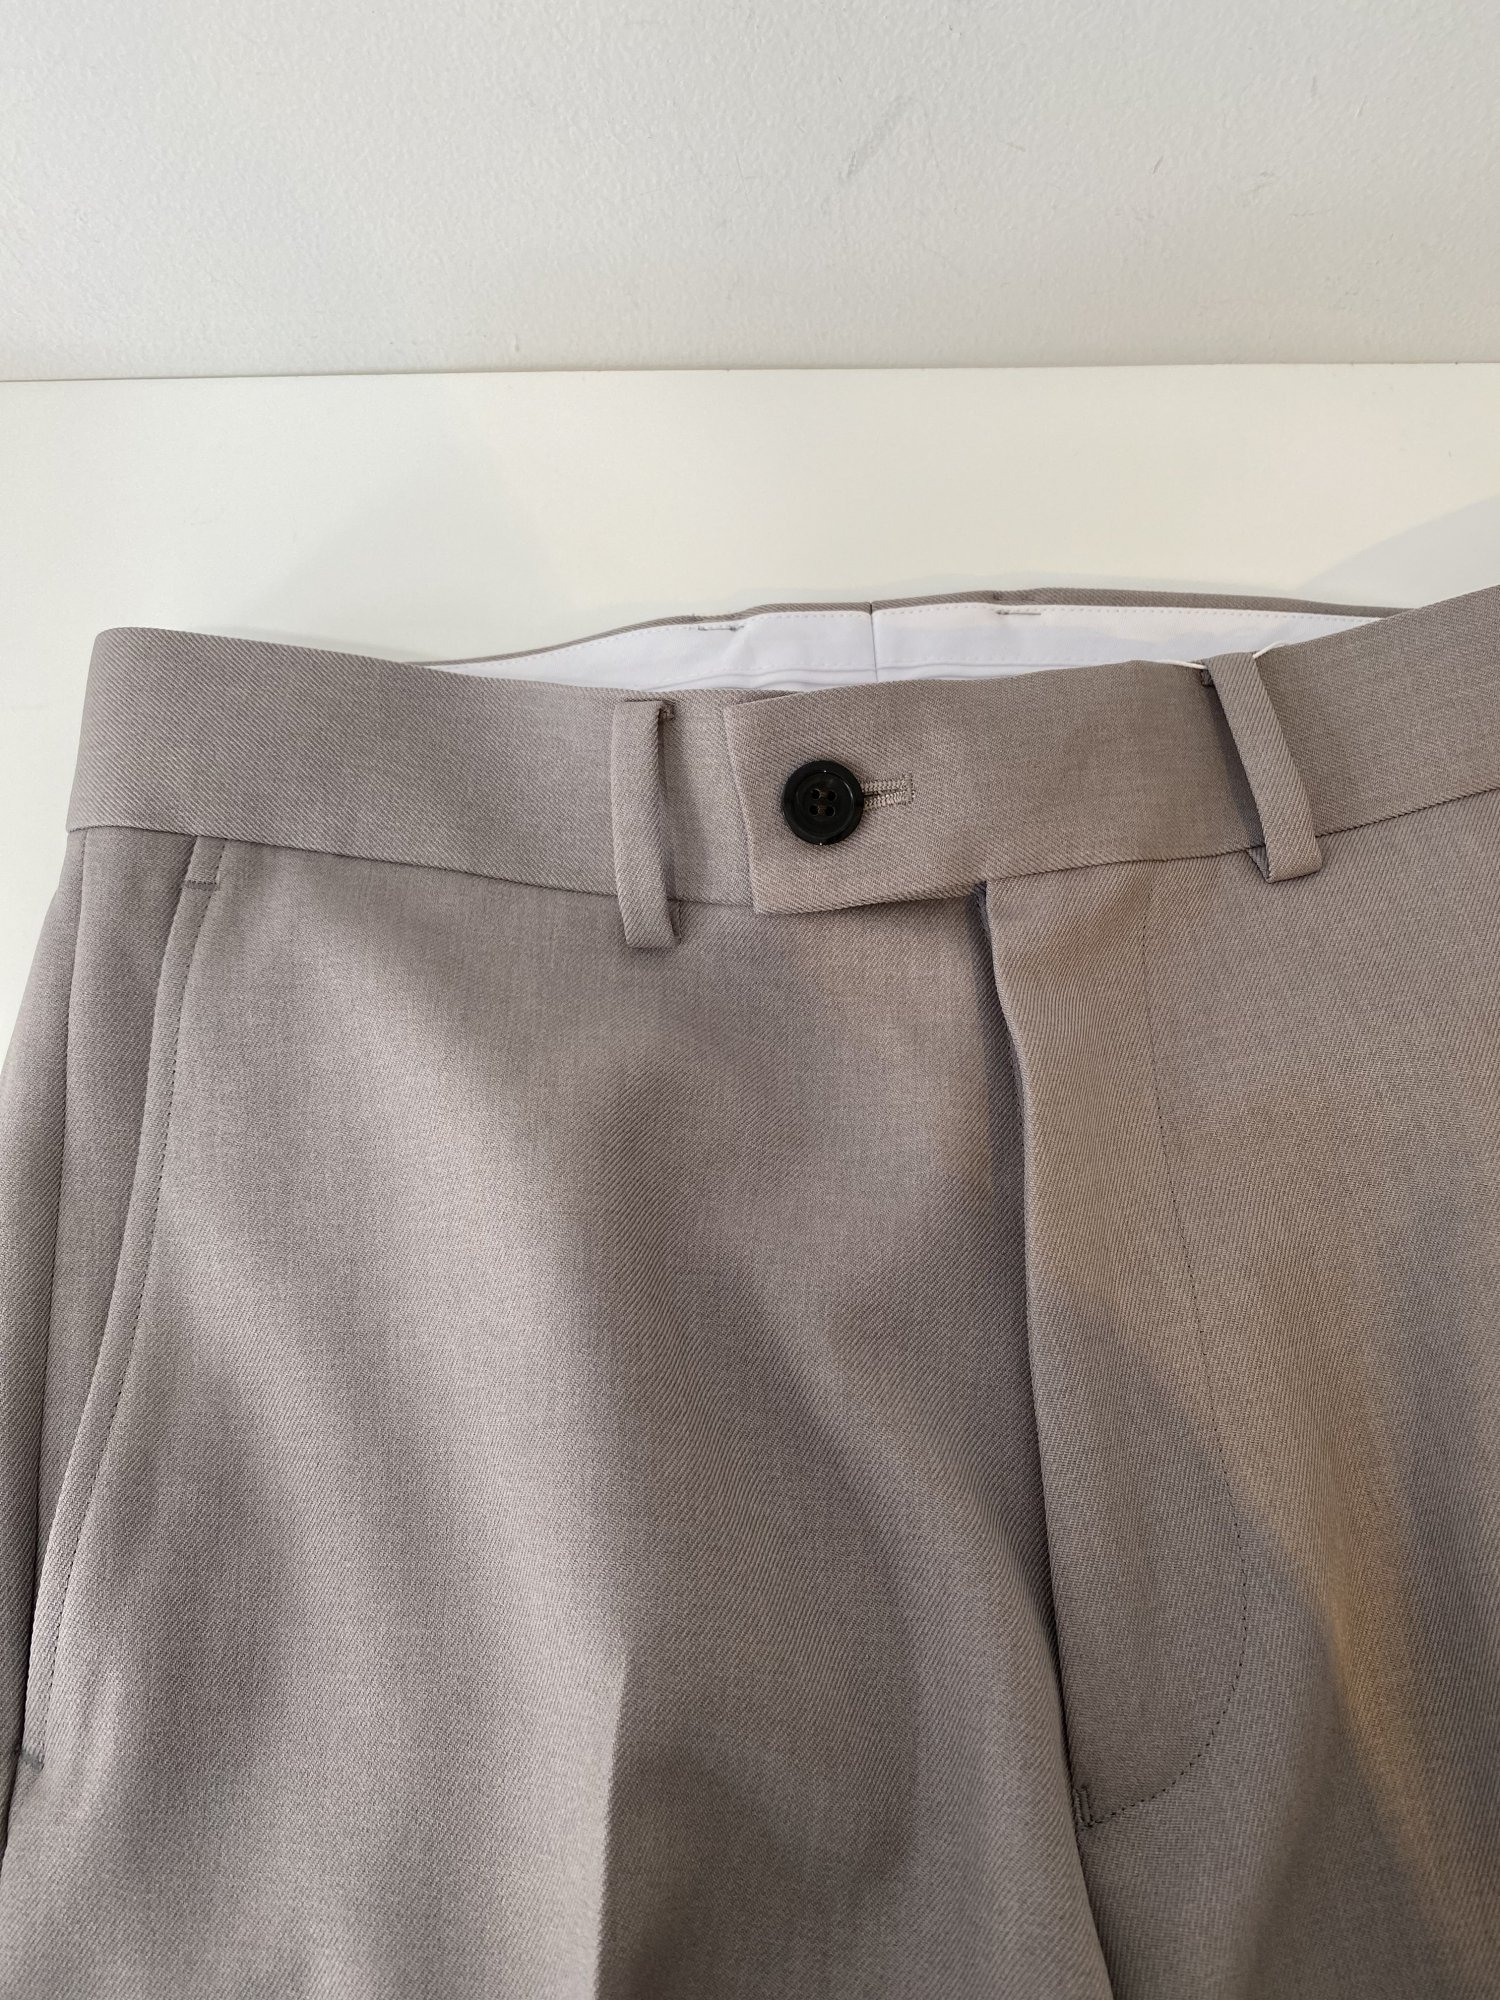 ALLEGE<br />[30%off] Ankle Slacks / GRAY <img class='new_mark_img2' src='https://img.shop-pro.jp/img/new/icons20.gif' style='border:none;display:inline;margin:0px;padding:0px;width:auto;' />